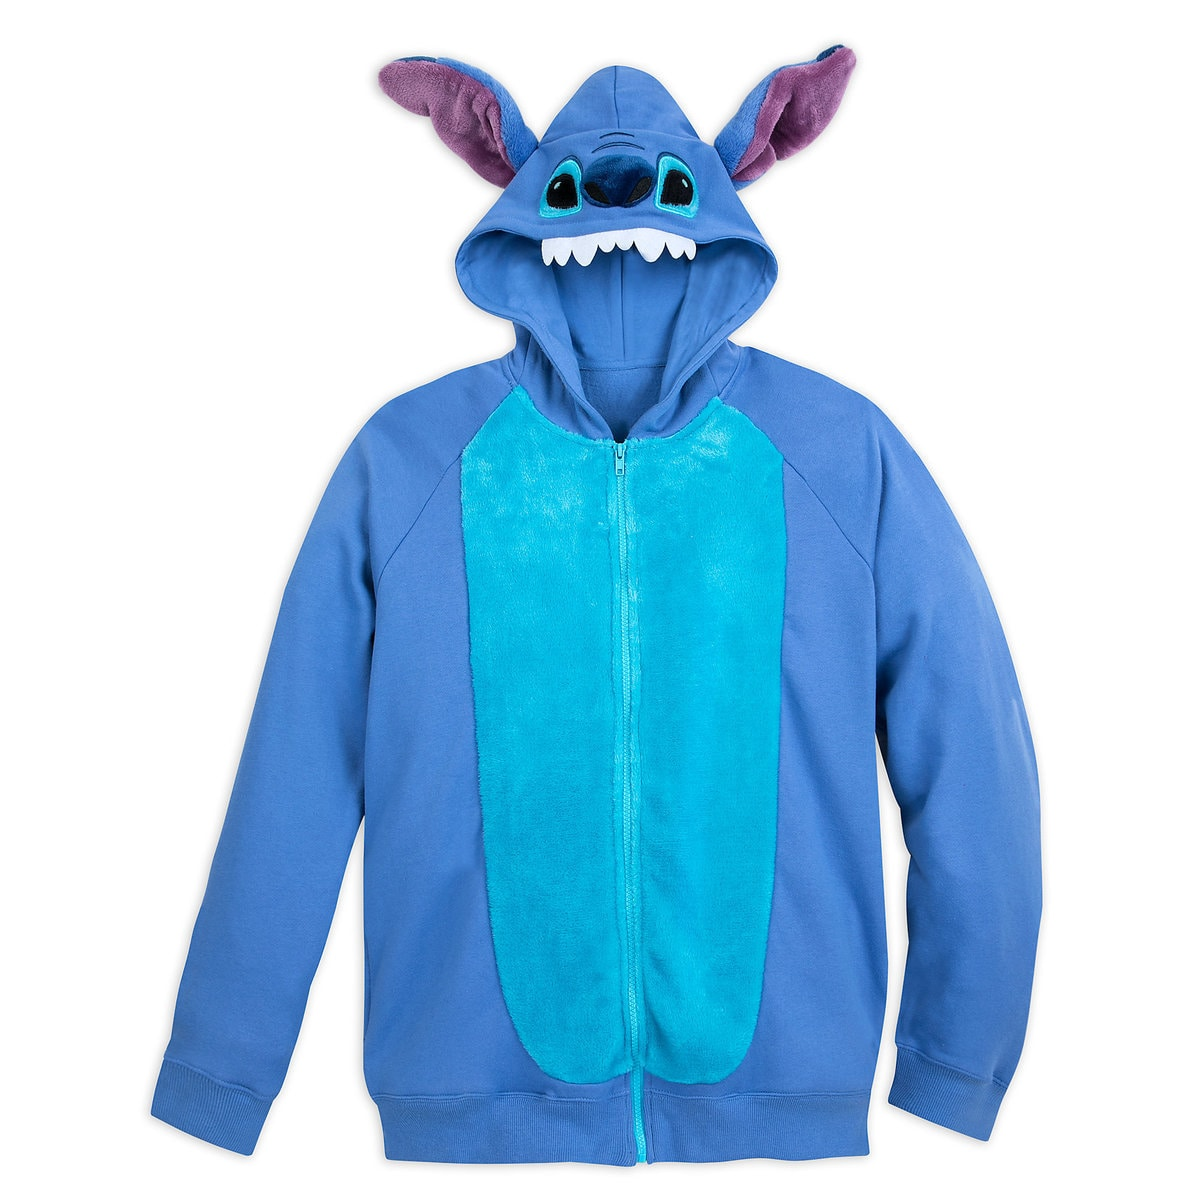 0a4cefd9884b Product Image of Stitch Costume Hoodie for Adults # 1